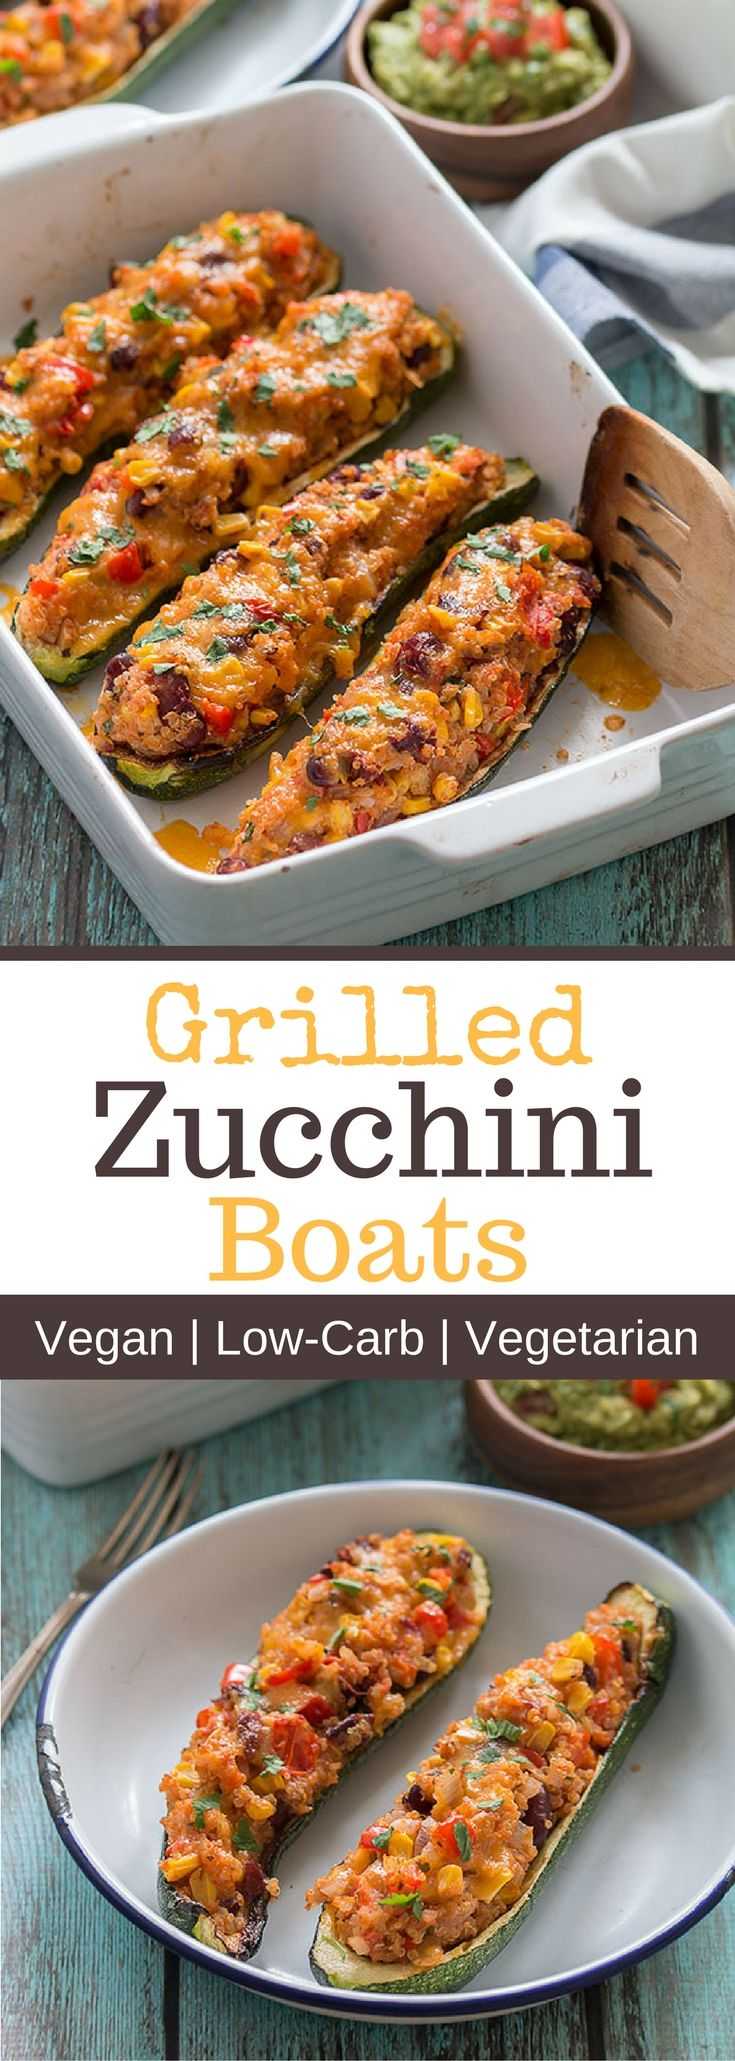 Grilled Zucchini Boats are absolutely delicious and easy to make. They are vegan, gluten-free, low in carbs and you can enjoy them spicy or mild.